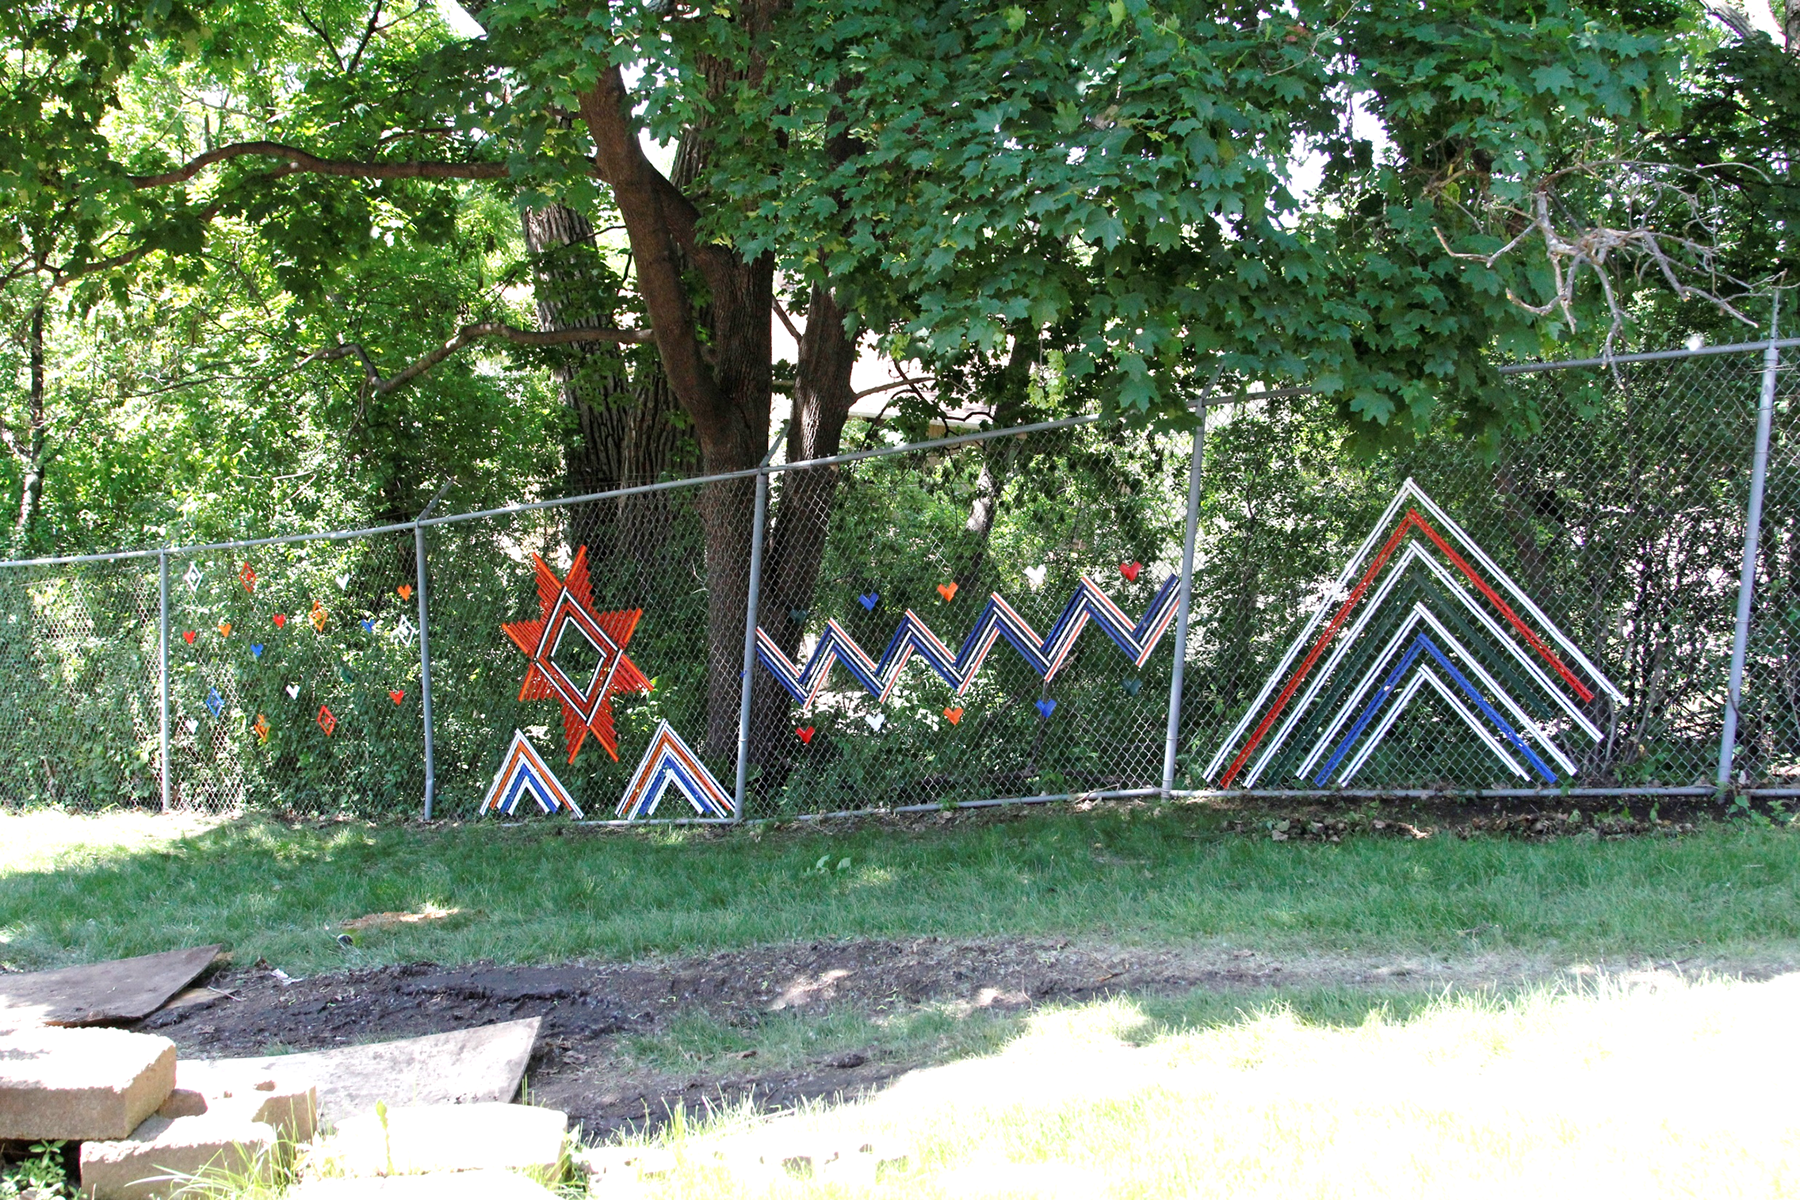 Completed fence weaving at Wilder Center for Social Healing